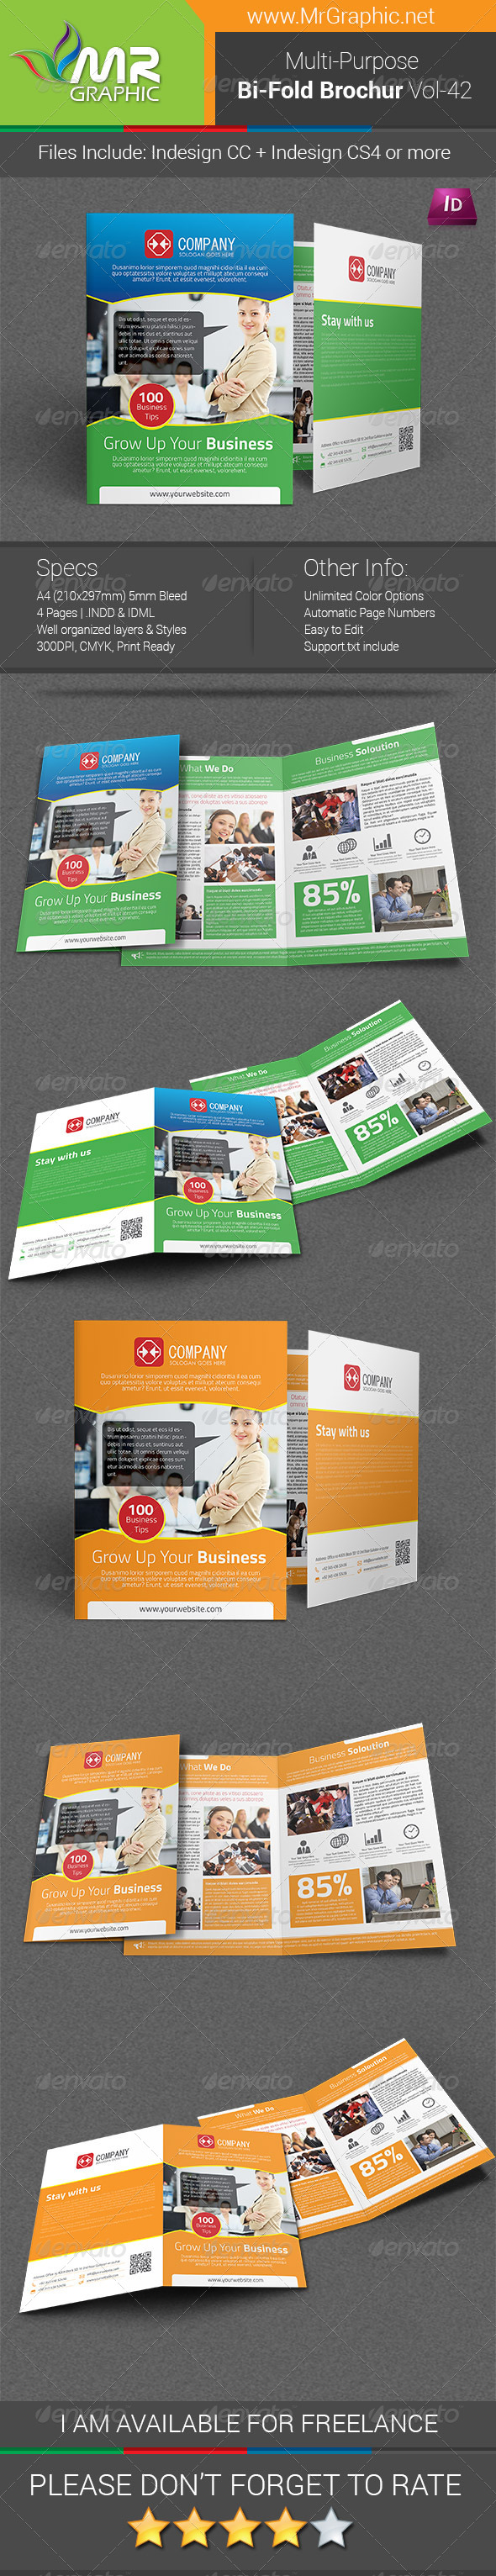 Multipurpose Bifold Brochure Template Vol-42 - Corporate Brochures